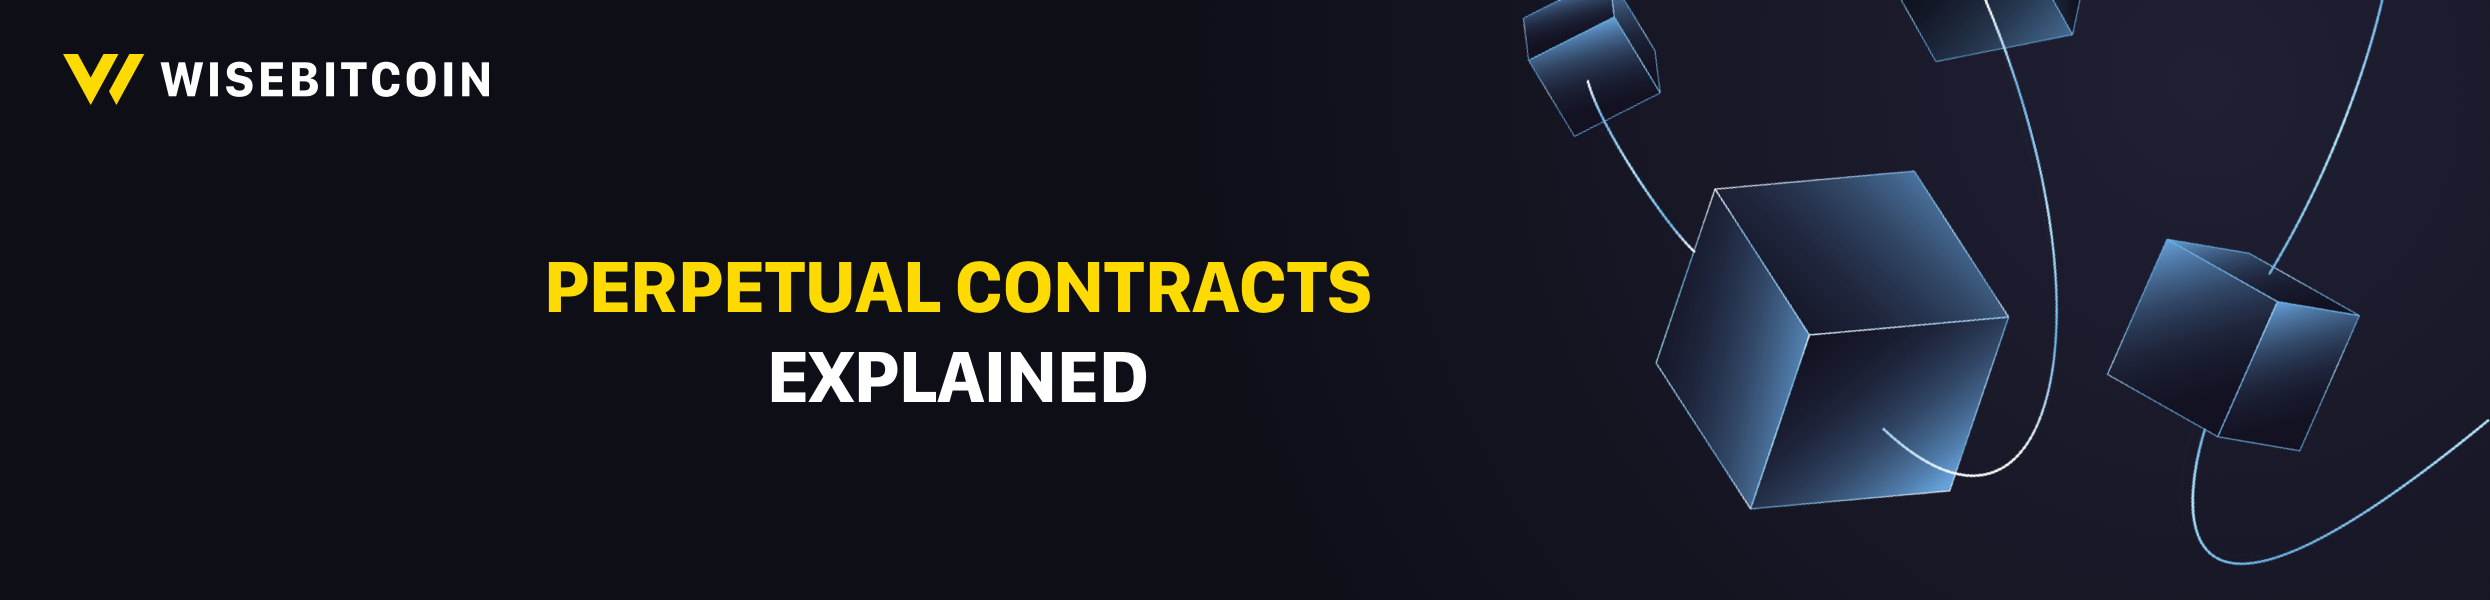 perpetual contracts banner